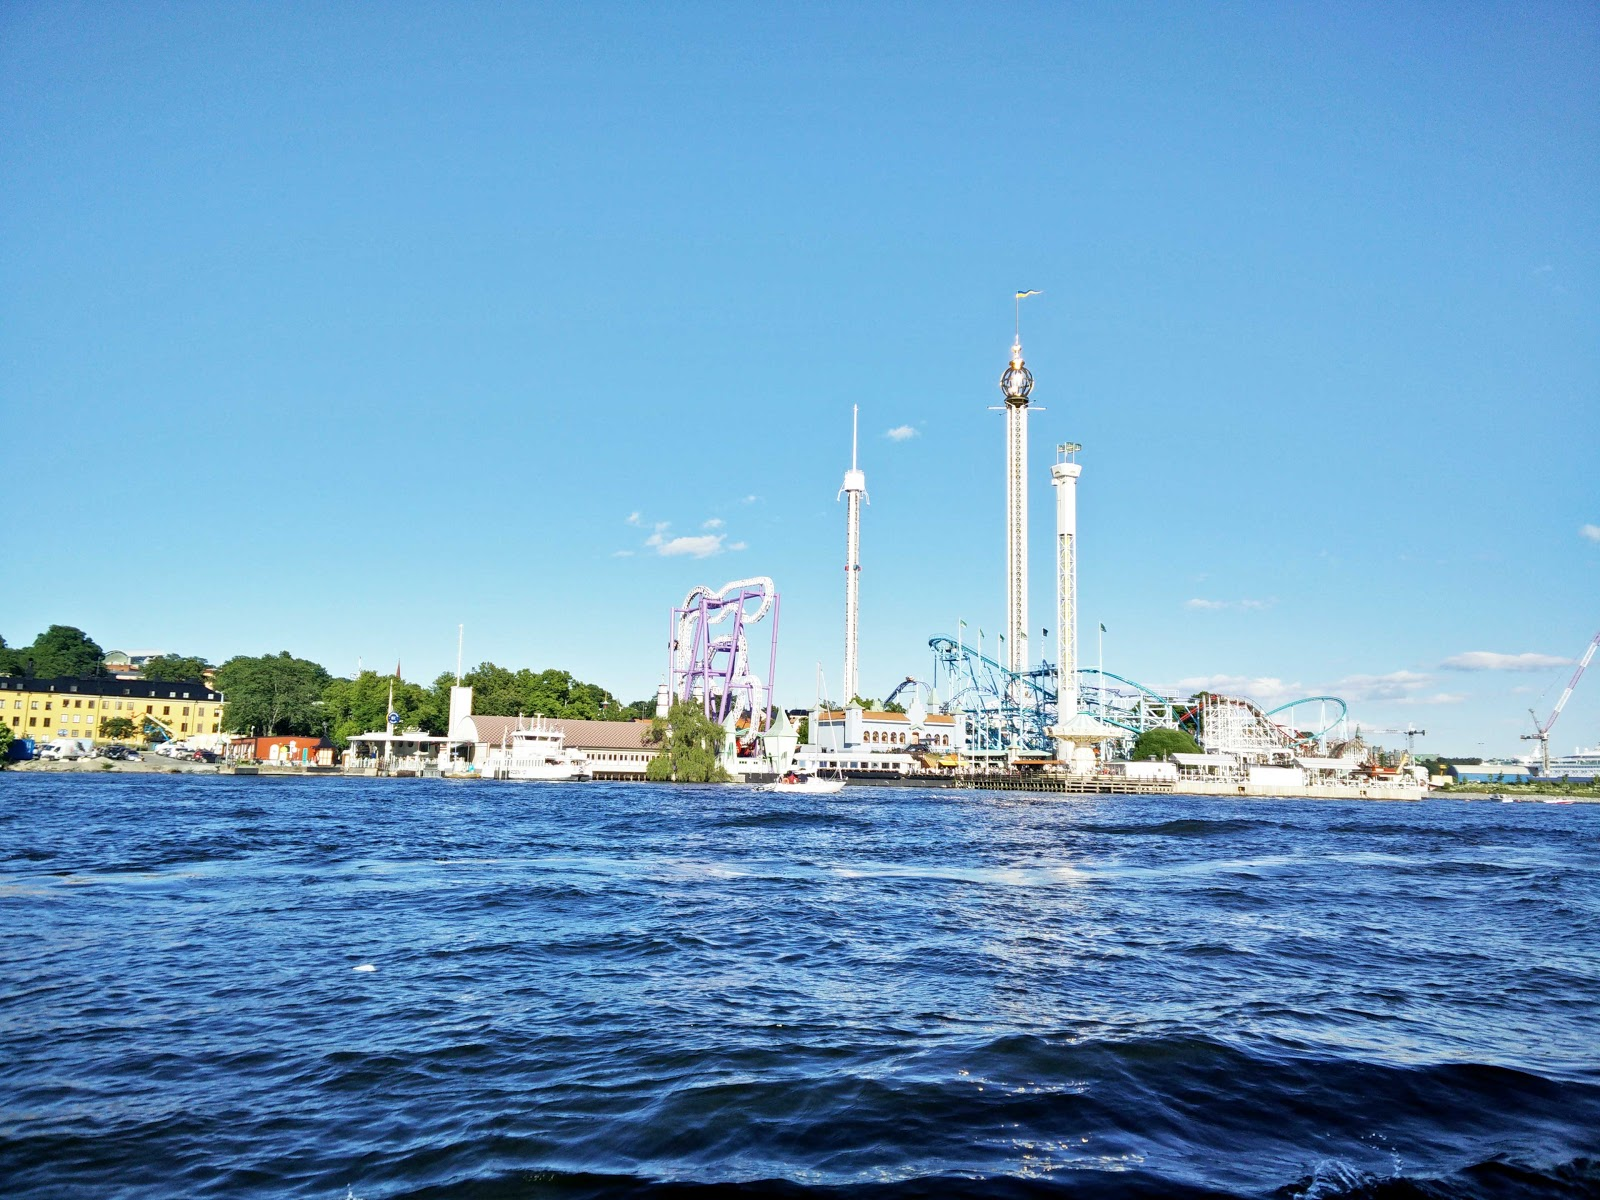 View of Djurgården from a boat